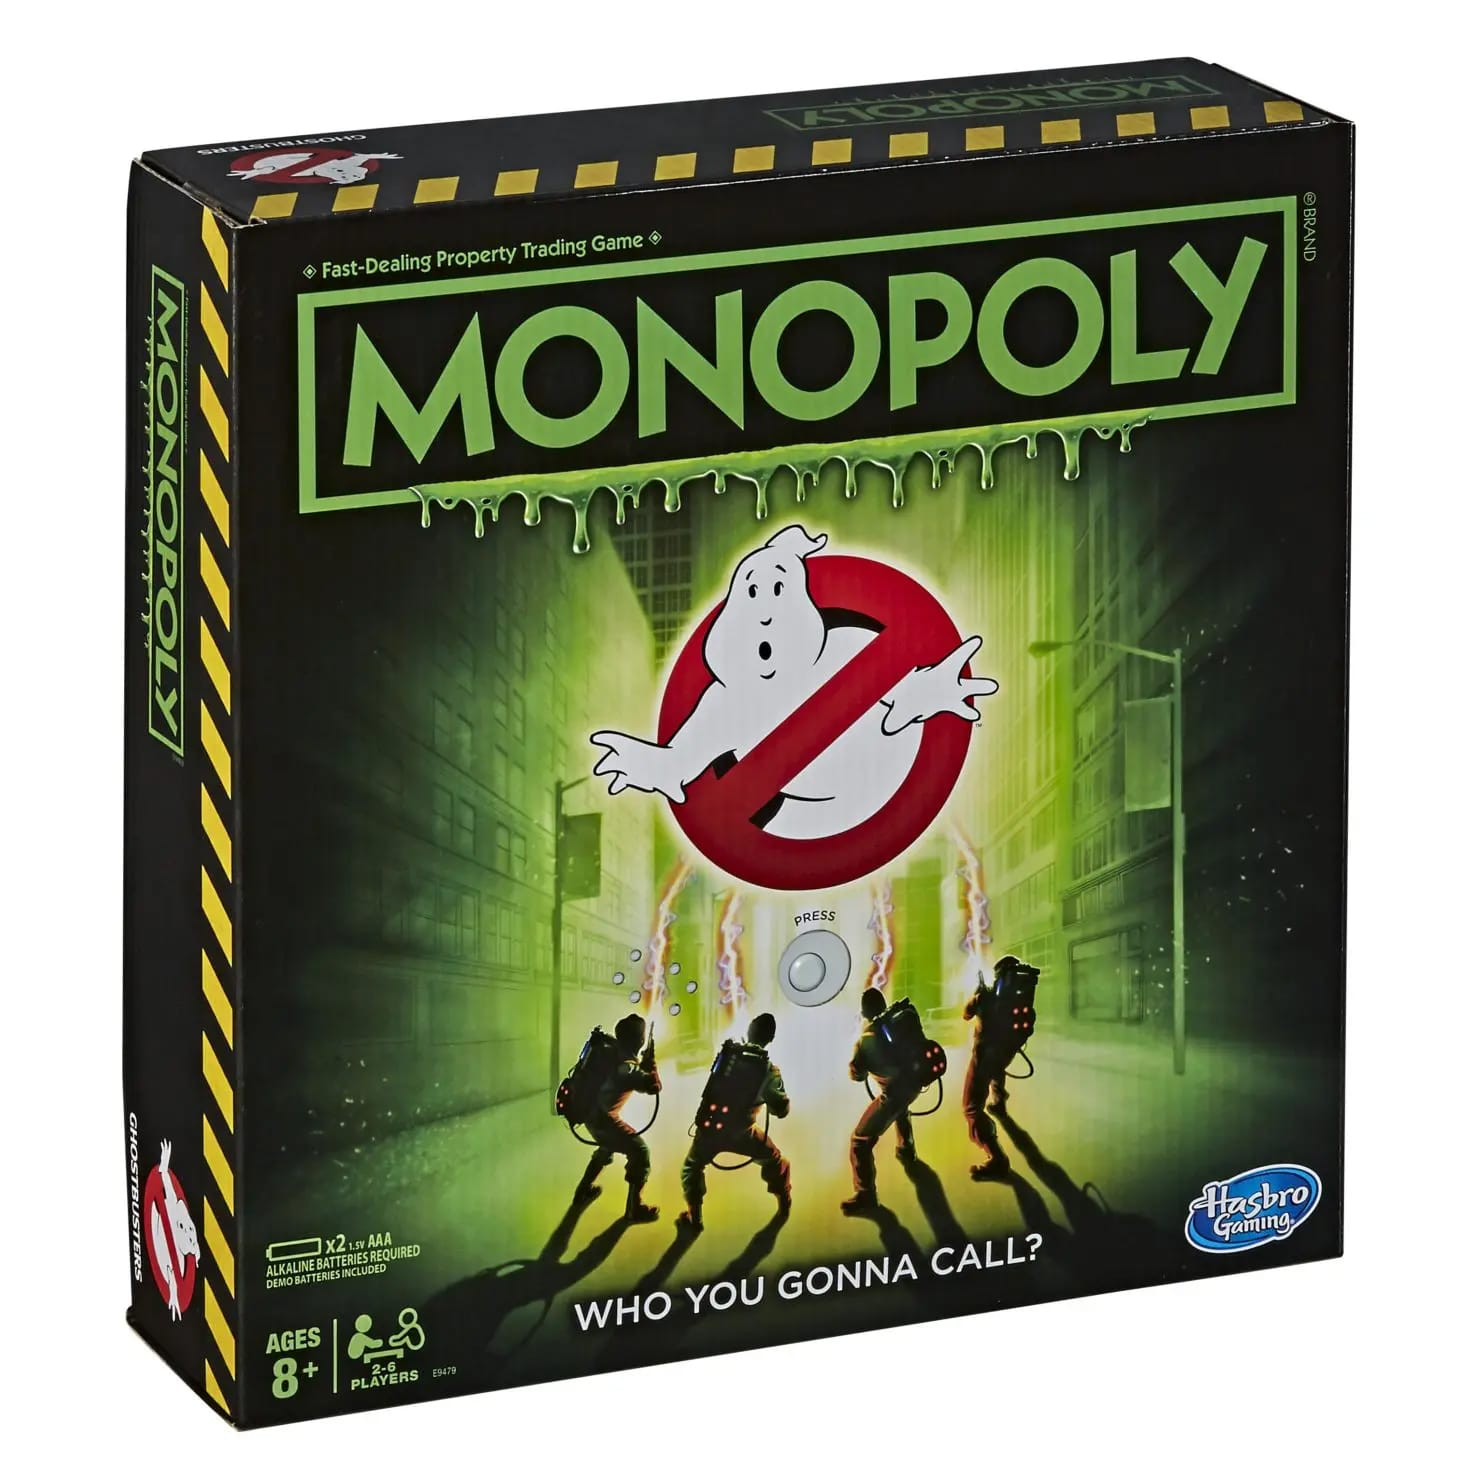 Monopoly: Ghostbusters Edition gets a new version from Hasbro 16